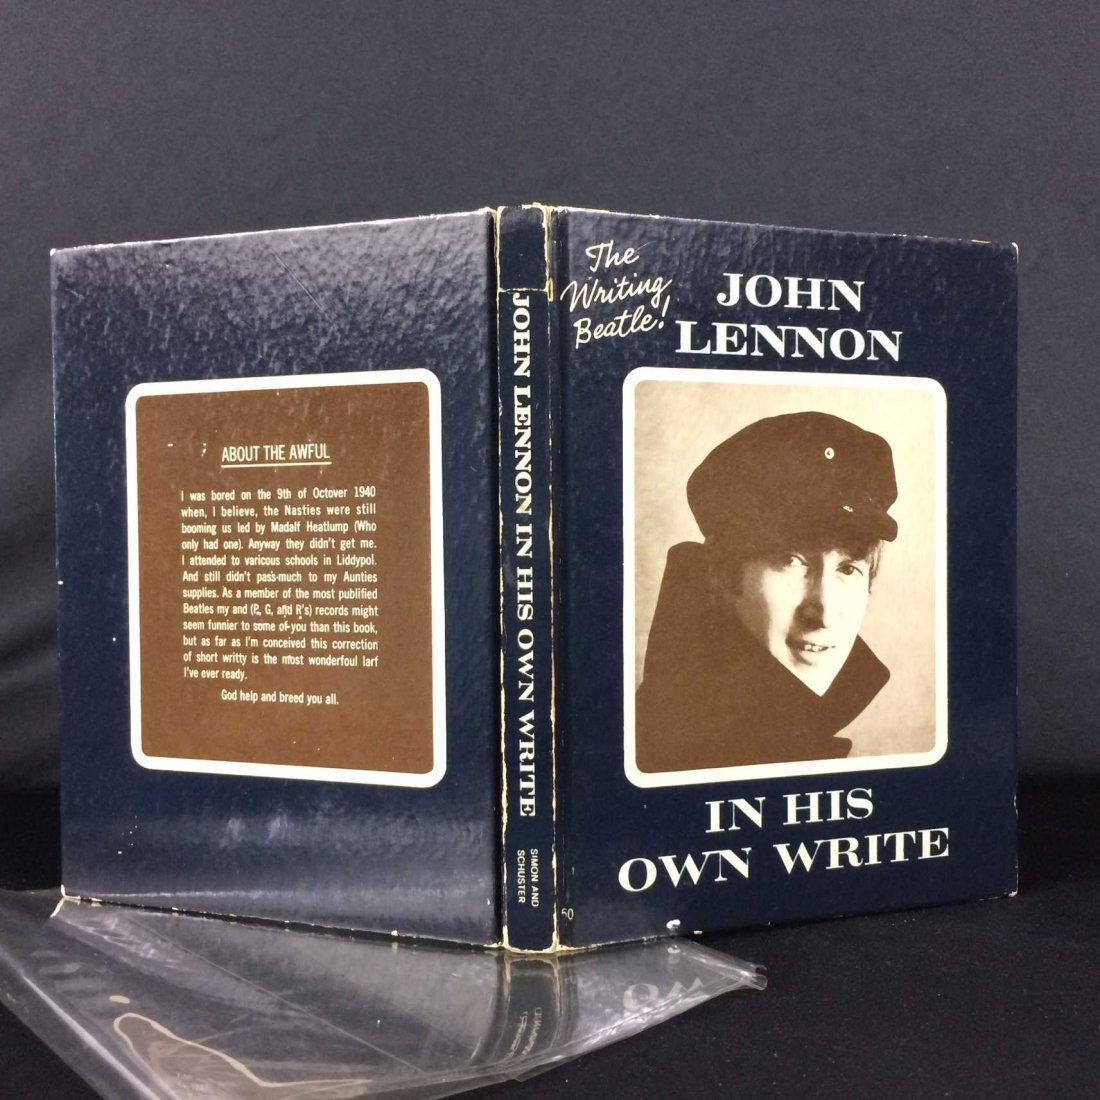 John Lennon Book Signed & Inscribed w/ Original Sketch!